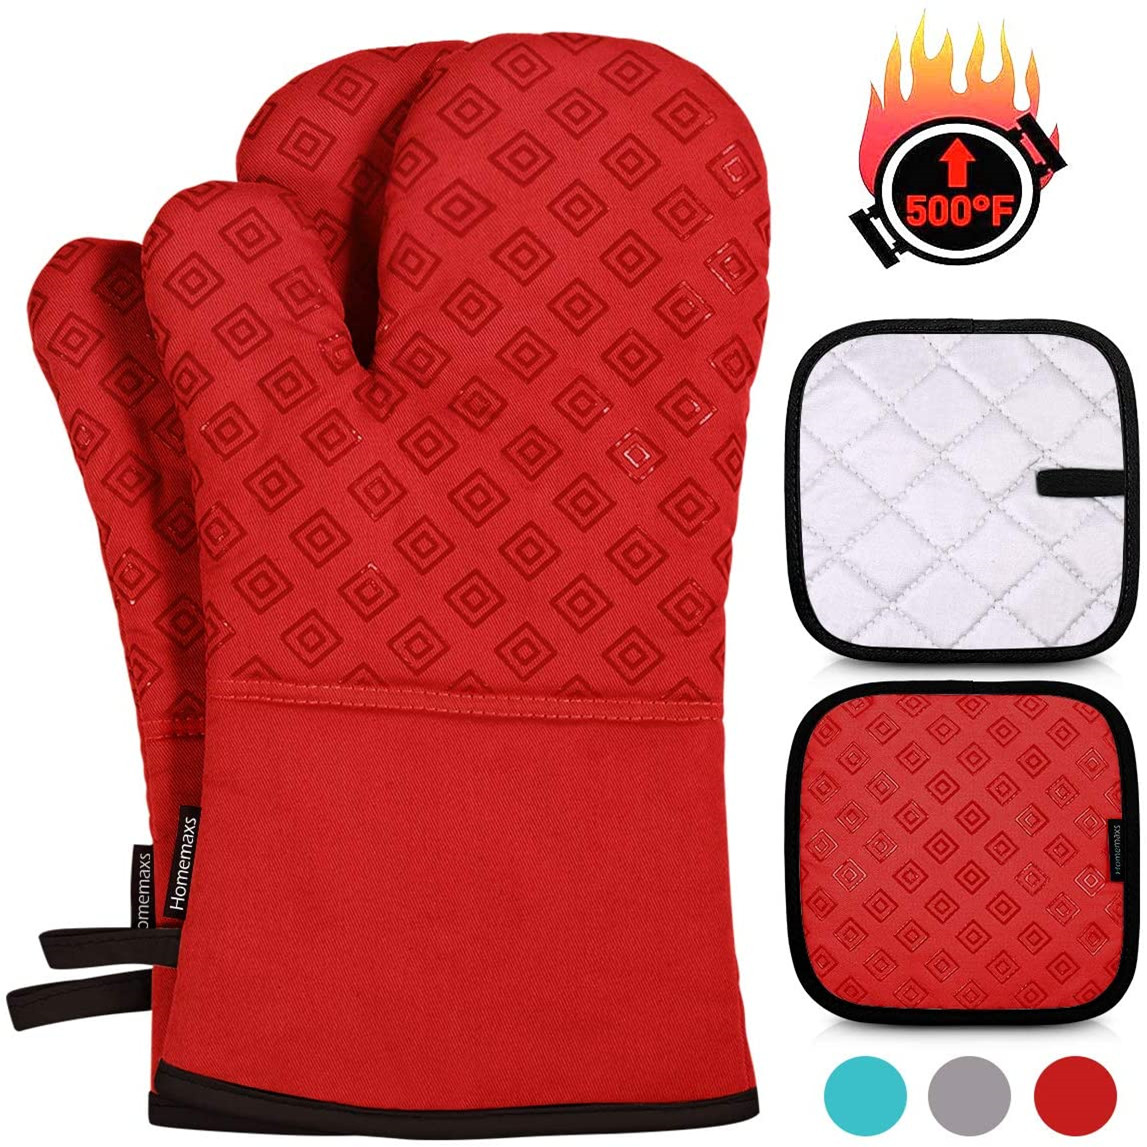 Heat Resistant Non-Slip Kitchen Mitten Silicone Cooking Gloves, Oven Mitts and Pot Holders Sets 4pcs (Red)